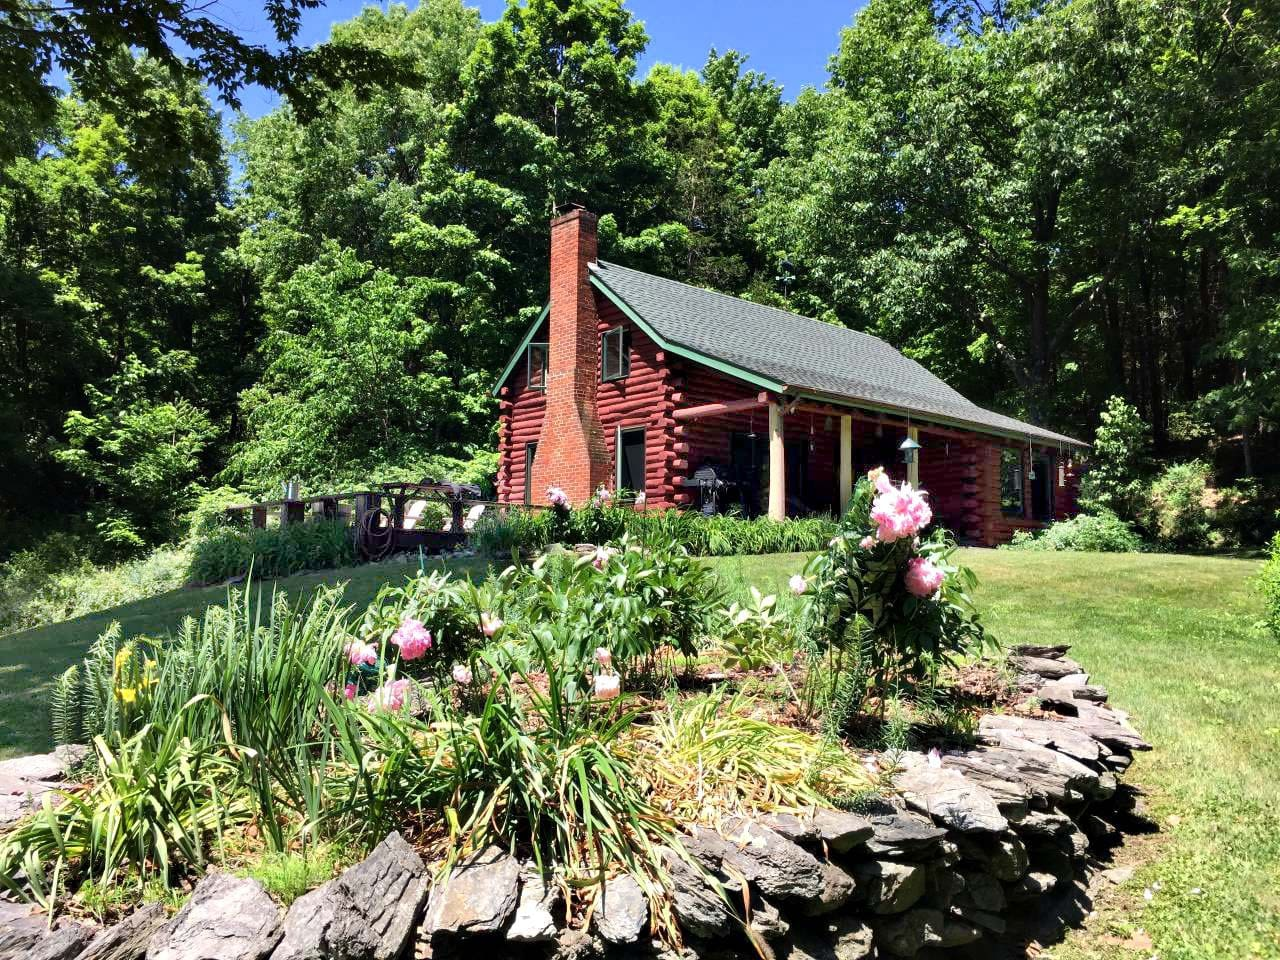 The cabin really comes to life in Spring and Summer